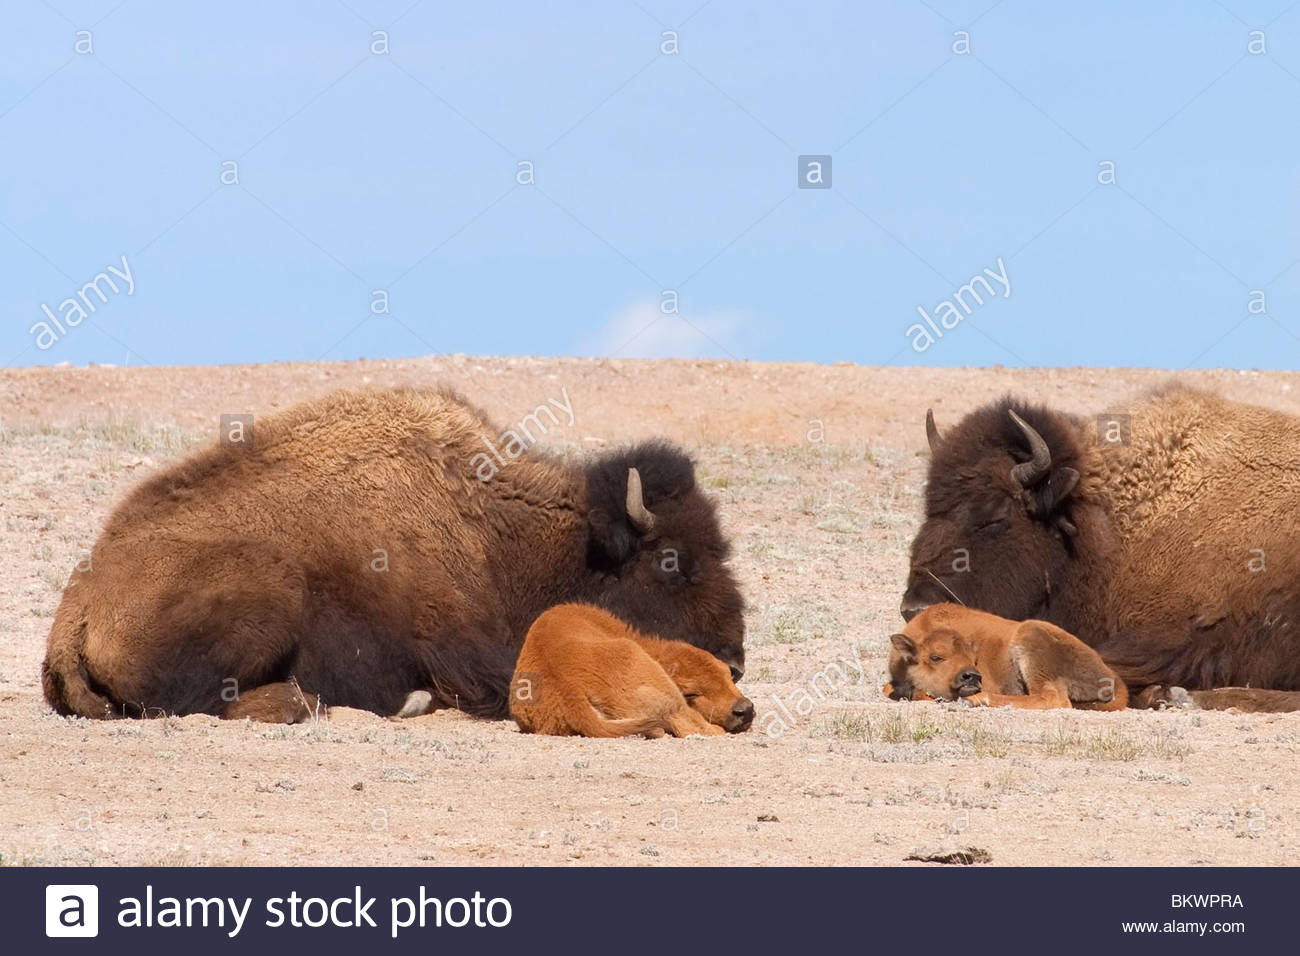 Two American bison (Bison bison) rest with their calves on an open field in Yellowstone National Park, Wyoming. - Stock Image